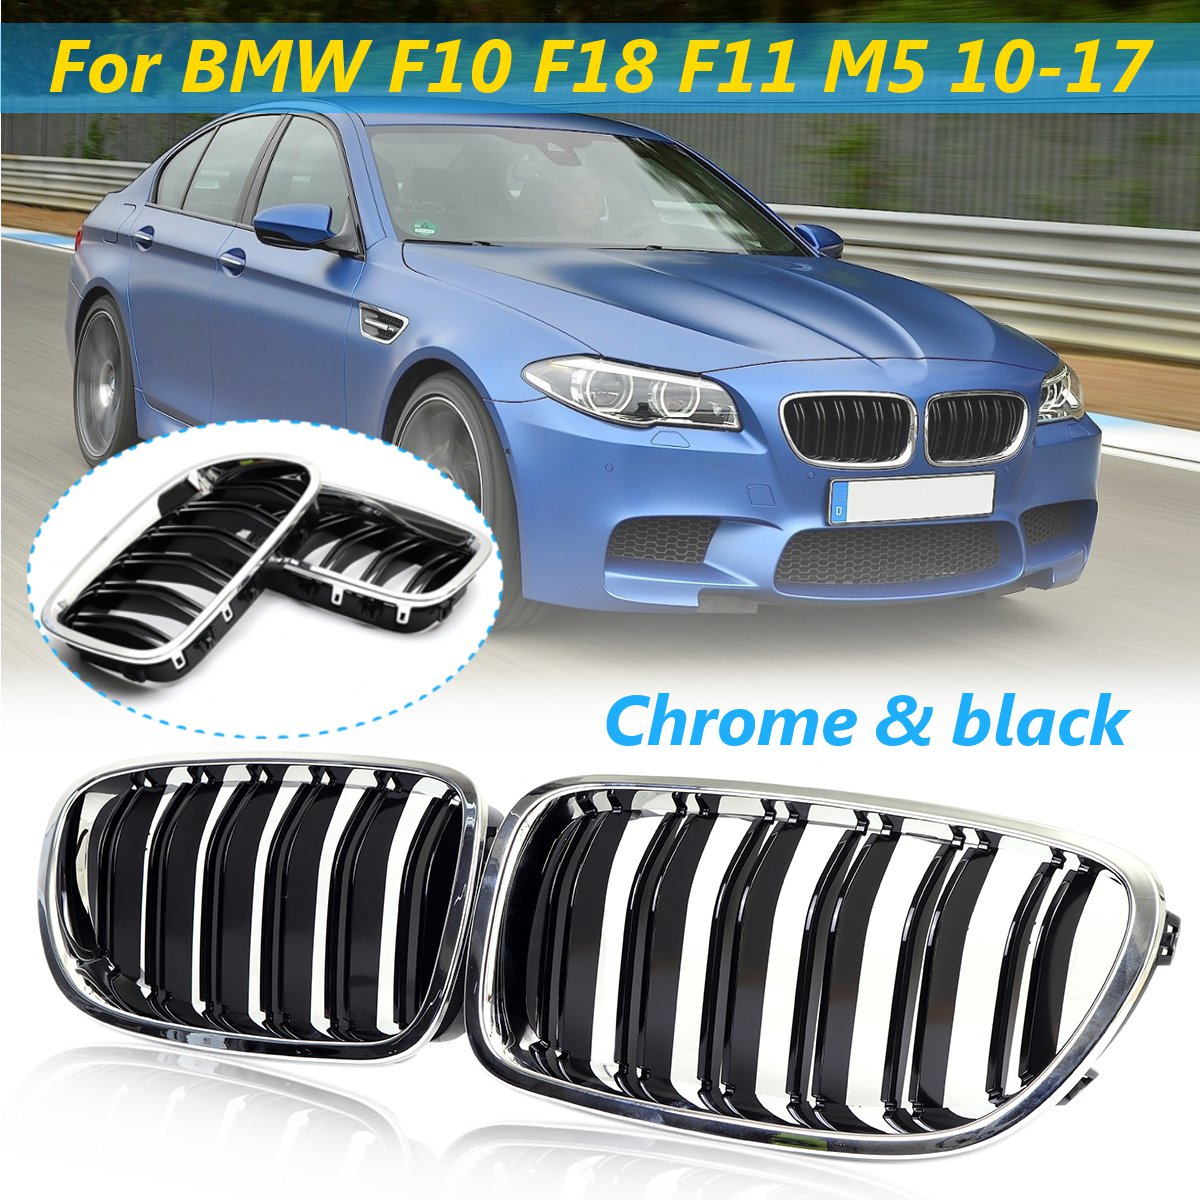 Pair Chrome+Black Front Kidney Grilles For BMW F10 F18 F11 M5 2010 2011 2012 2013 2014 2015 2016 2017 Car Racing Grills